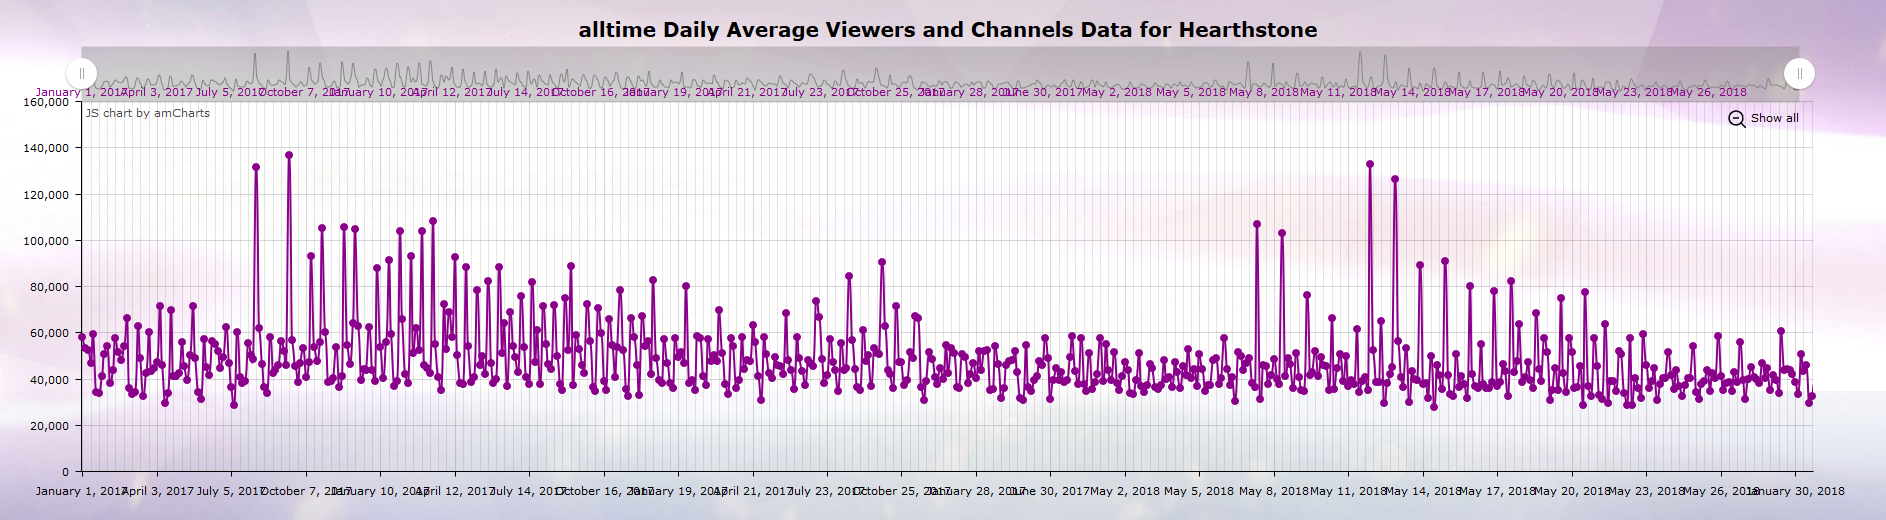 Graph about daily average has an interesting X-axis  : dataisugly